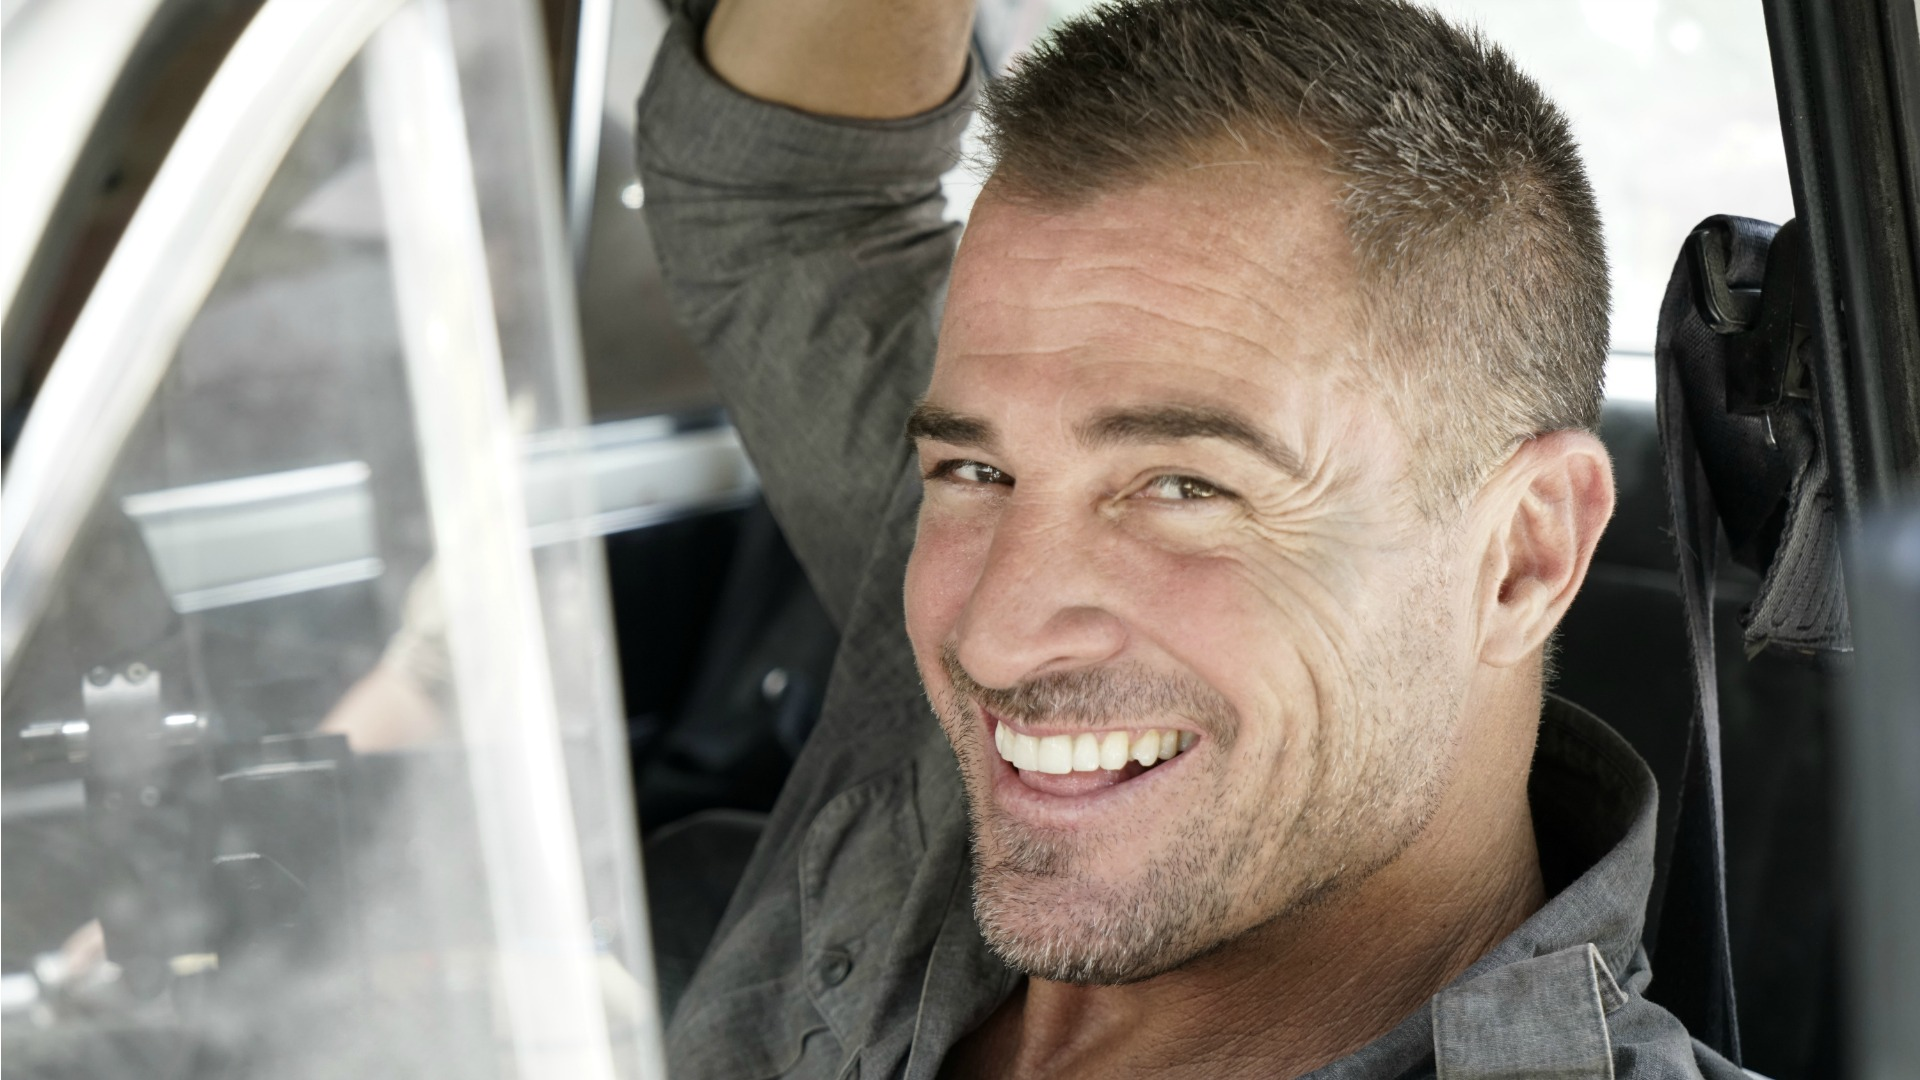 George Eads from MacGyver